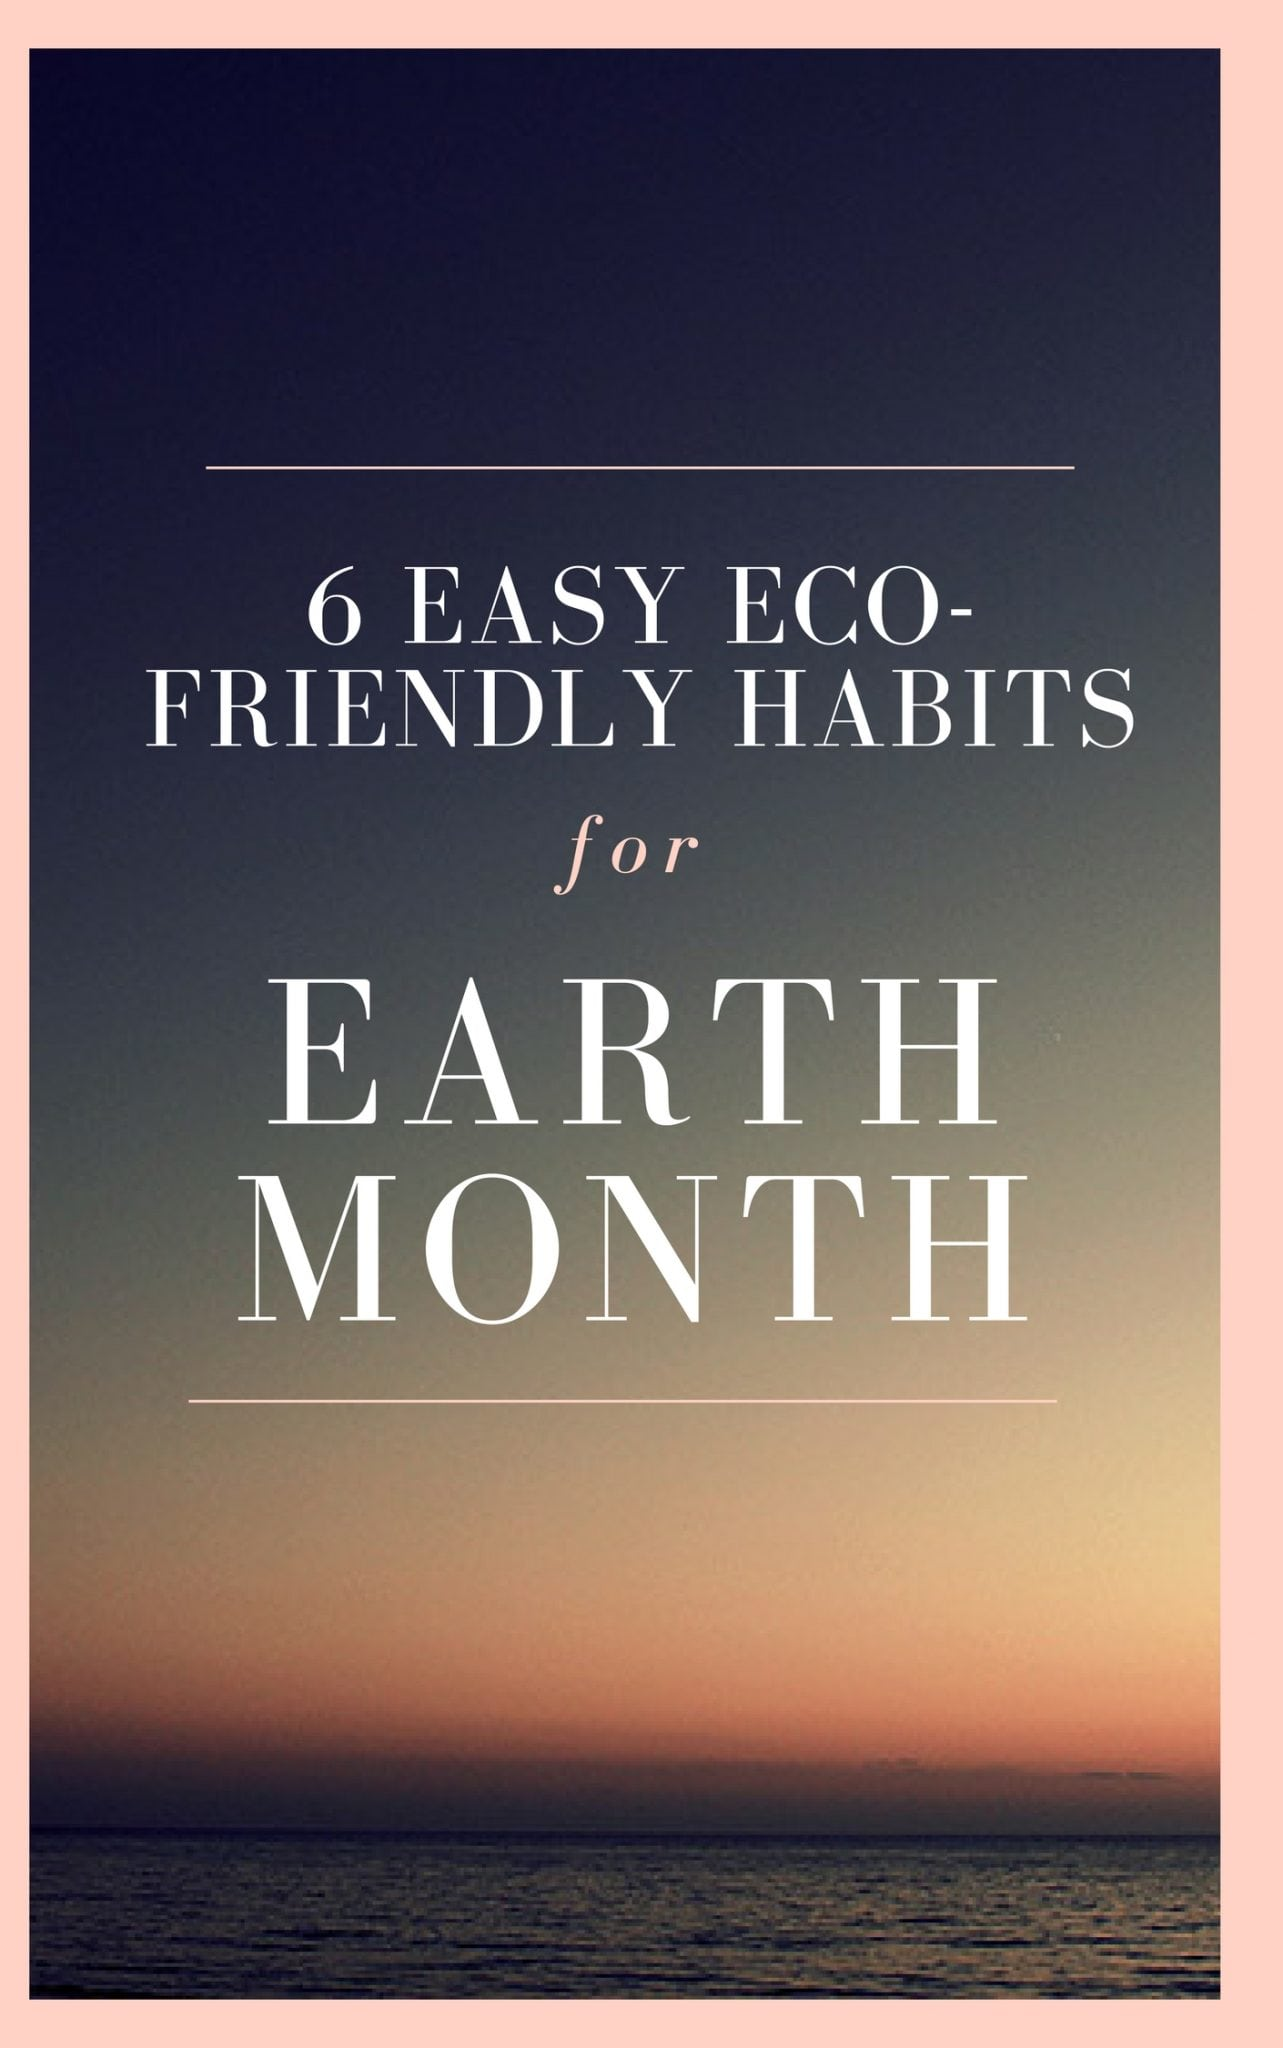 6 Eco-Friendly Habits for Earth Month